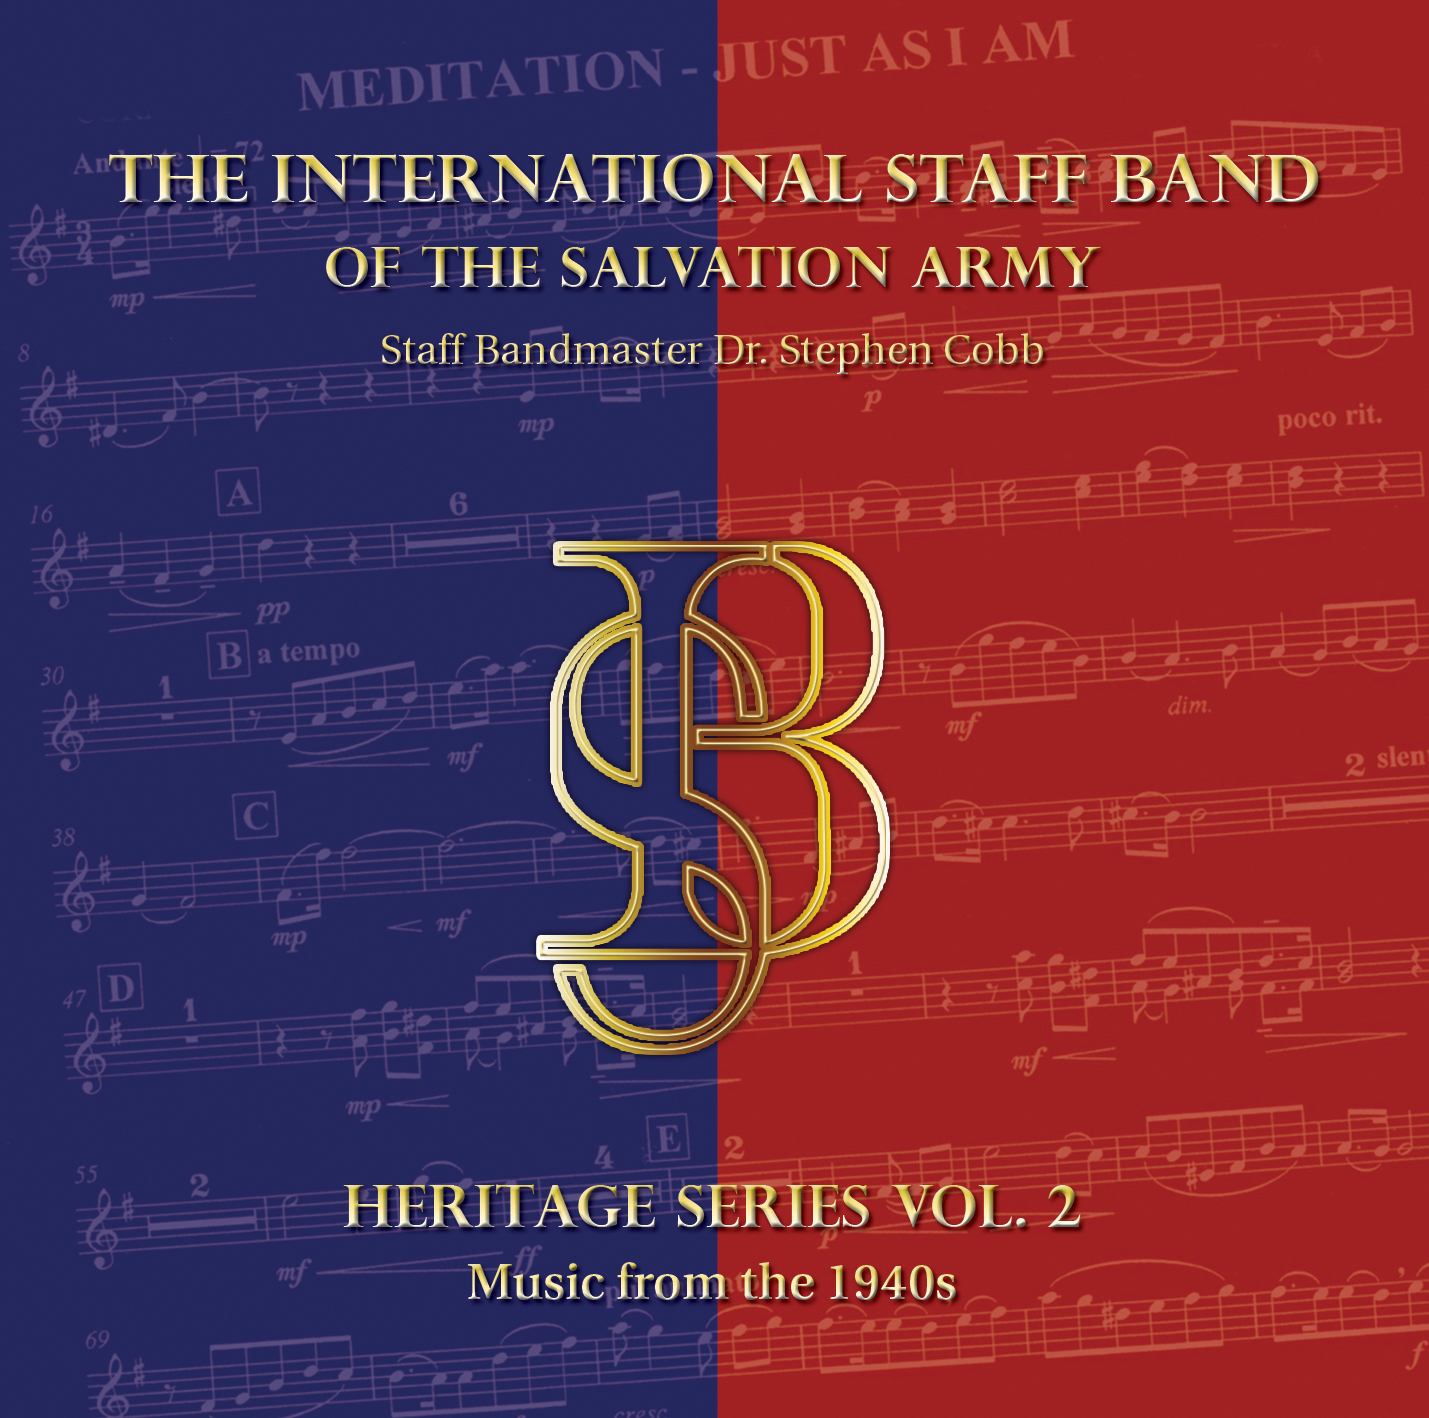 Heritage Series Vol. 2 - Music from the 1940s - Download